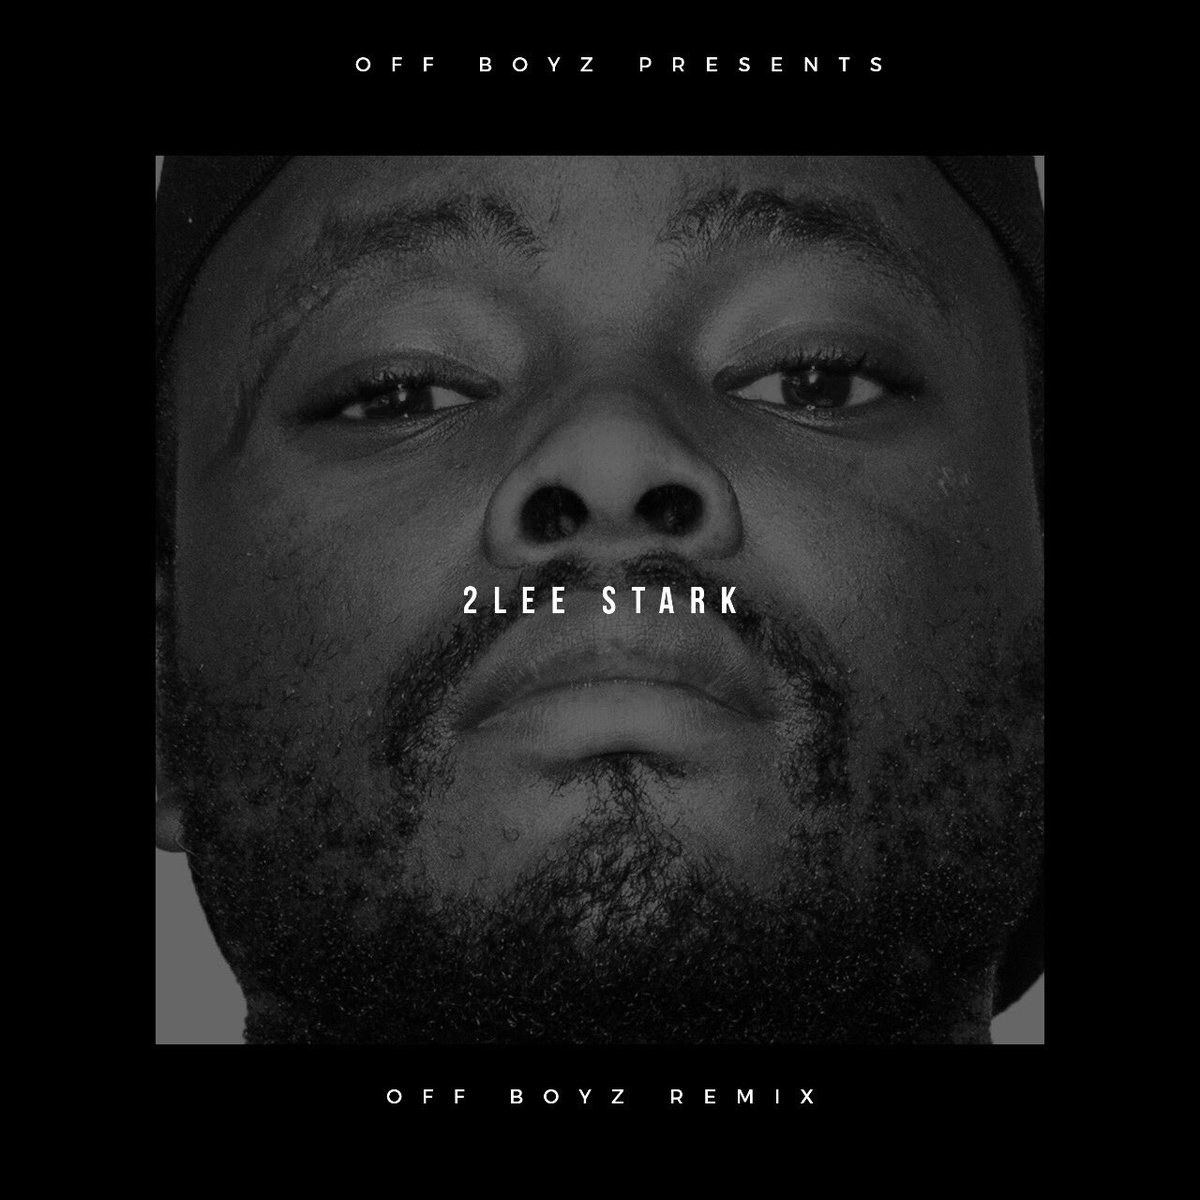 7 SEPTEMBER 2017. #OFFBOYZREMIX Featuring @ReasonHD and @2freshLES! GOD WE GOT ONE!!!